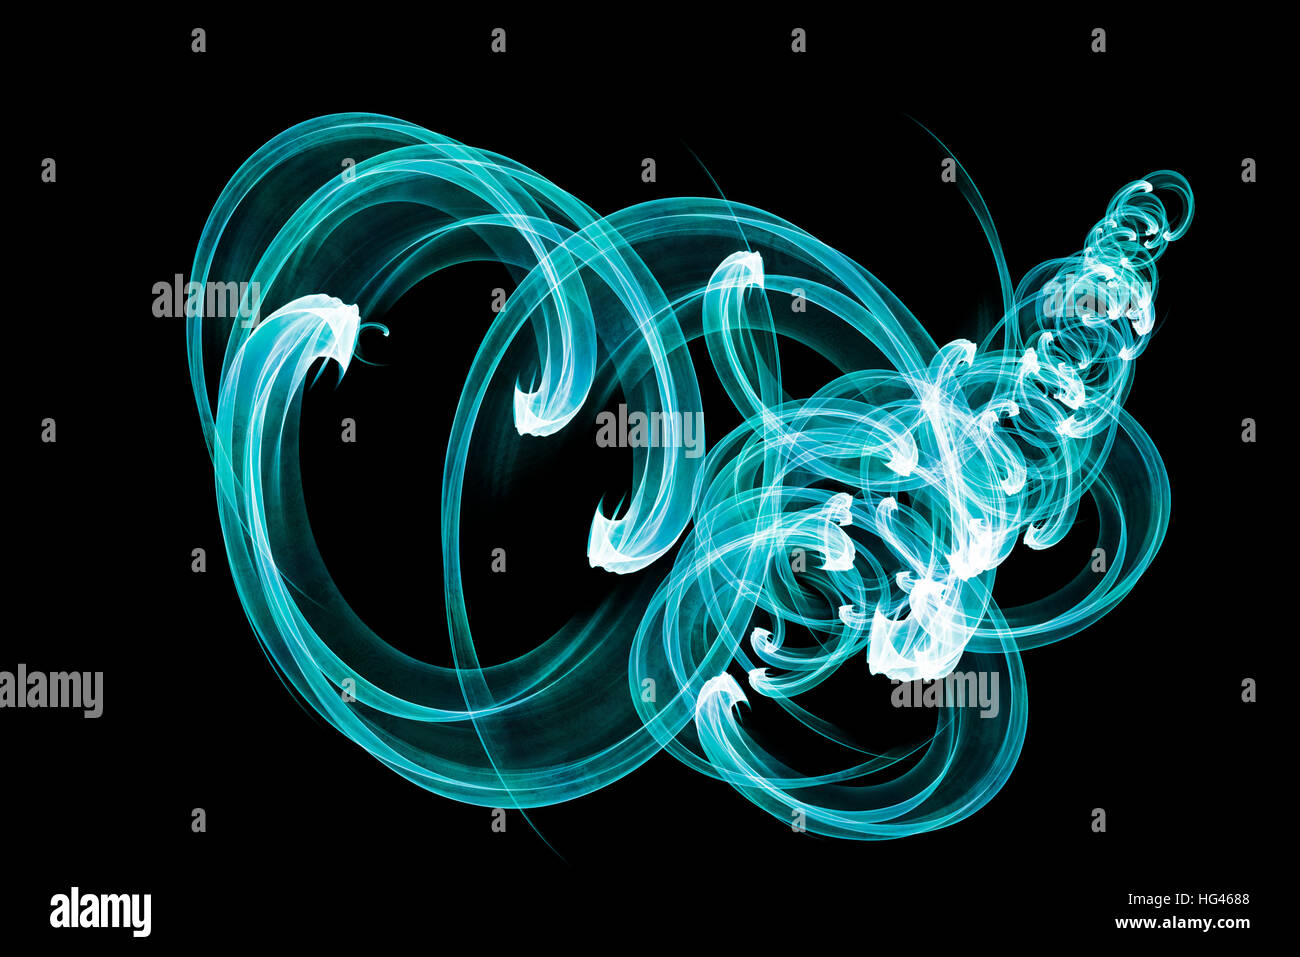 abstract blue lines on a black background, 3d illustration - Stock Image